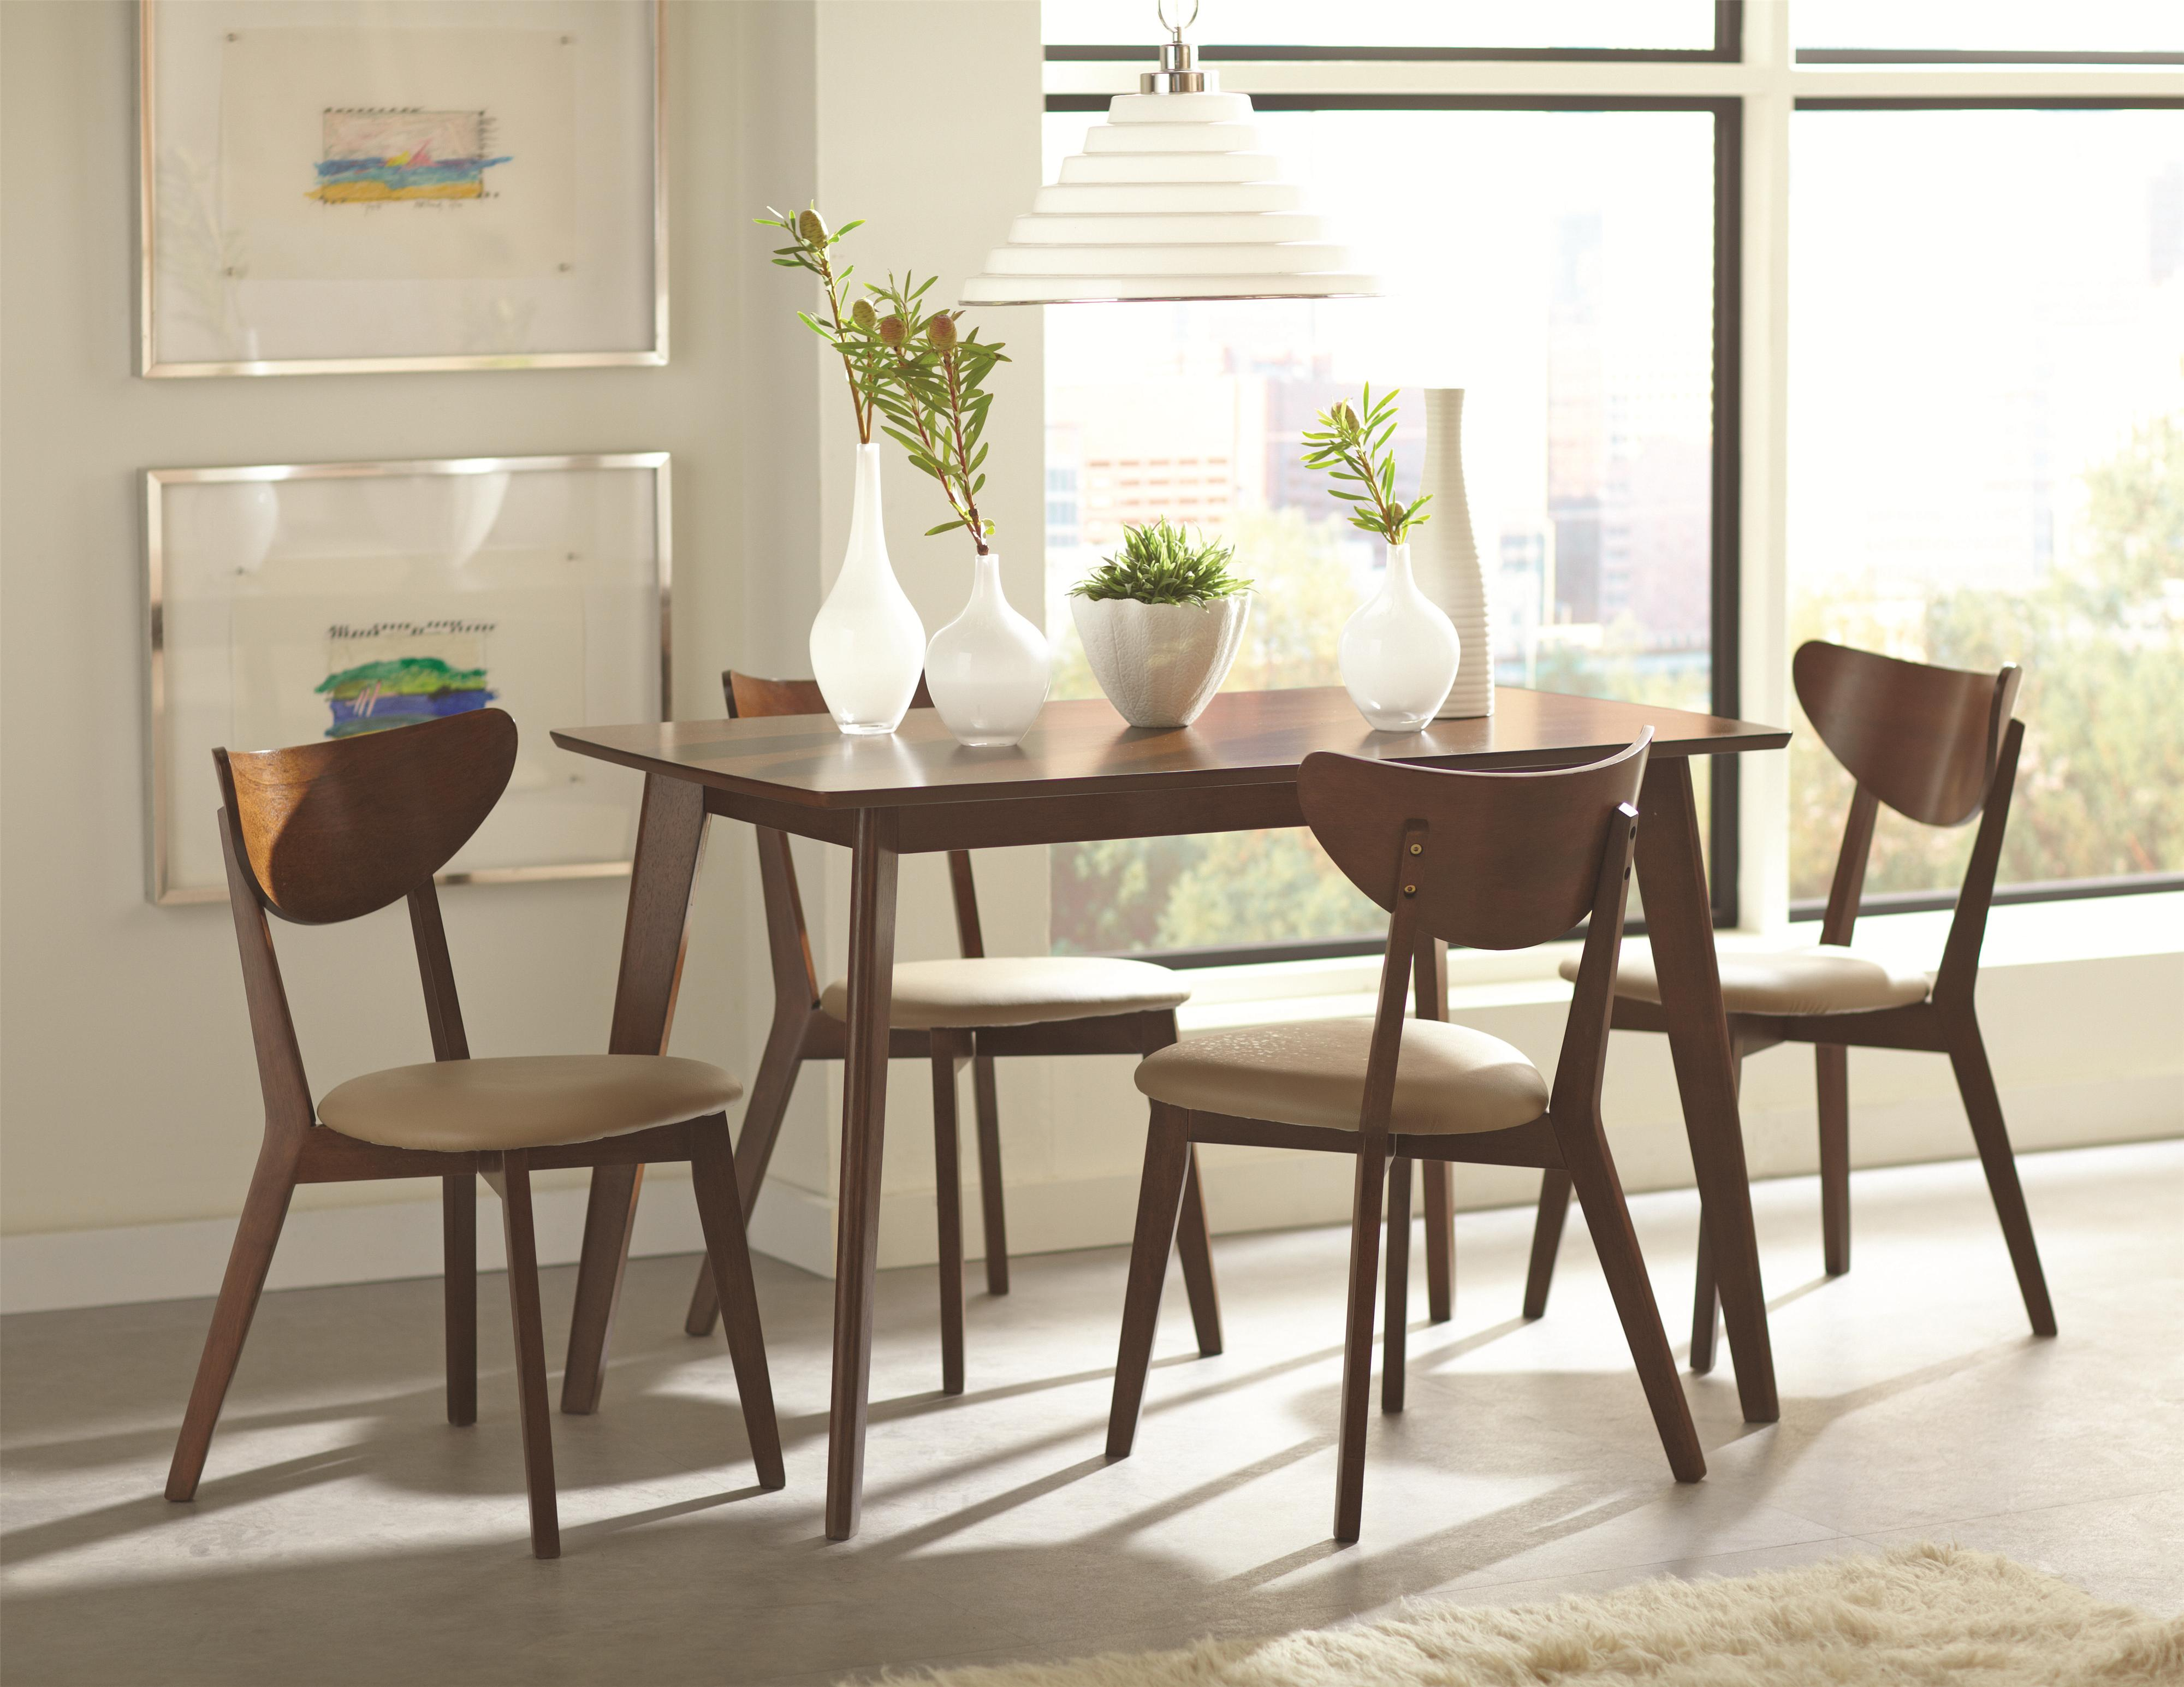 room rowyn dinning wood hills signal artisan inspire free home table overstock dining set by q garden shipping product today extending